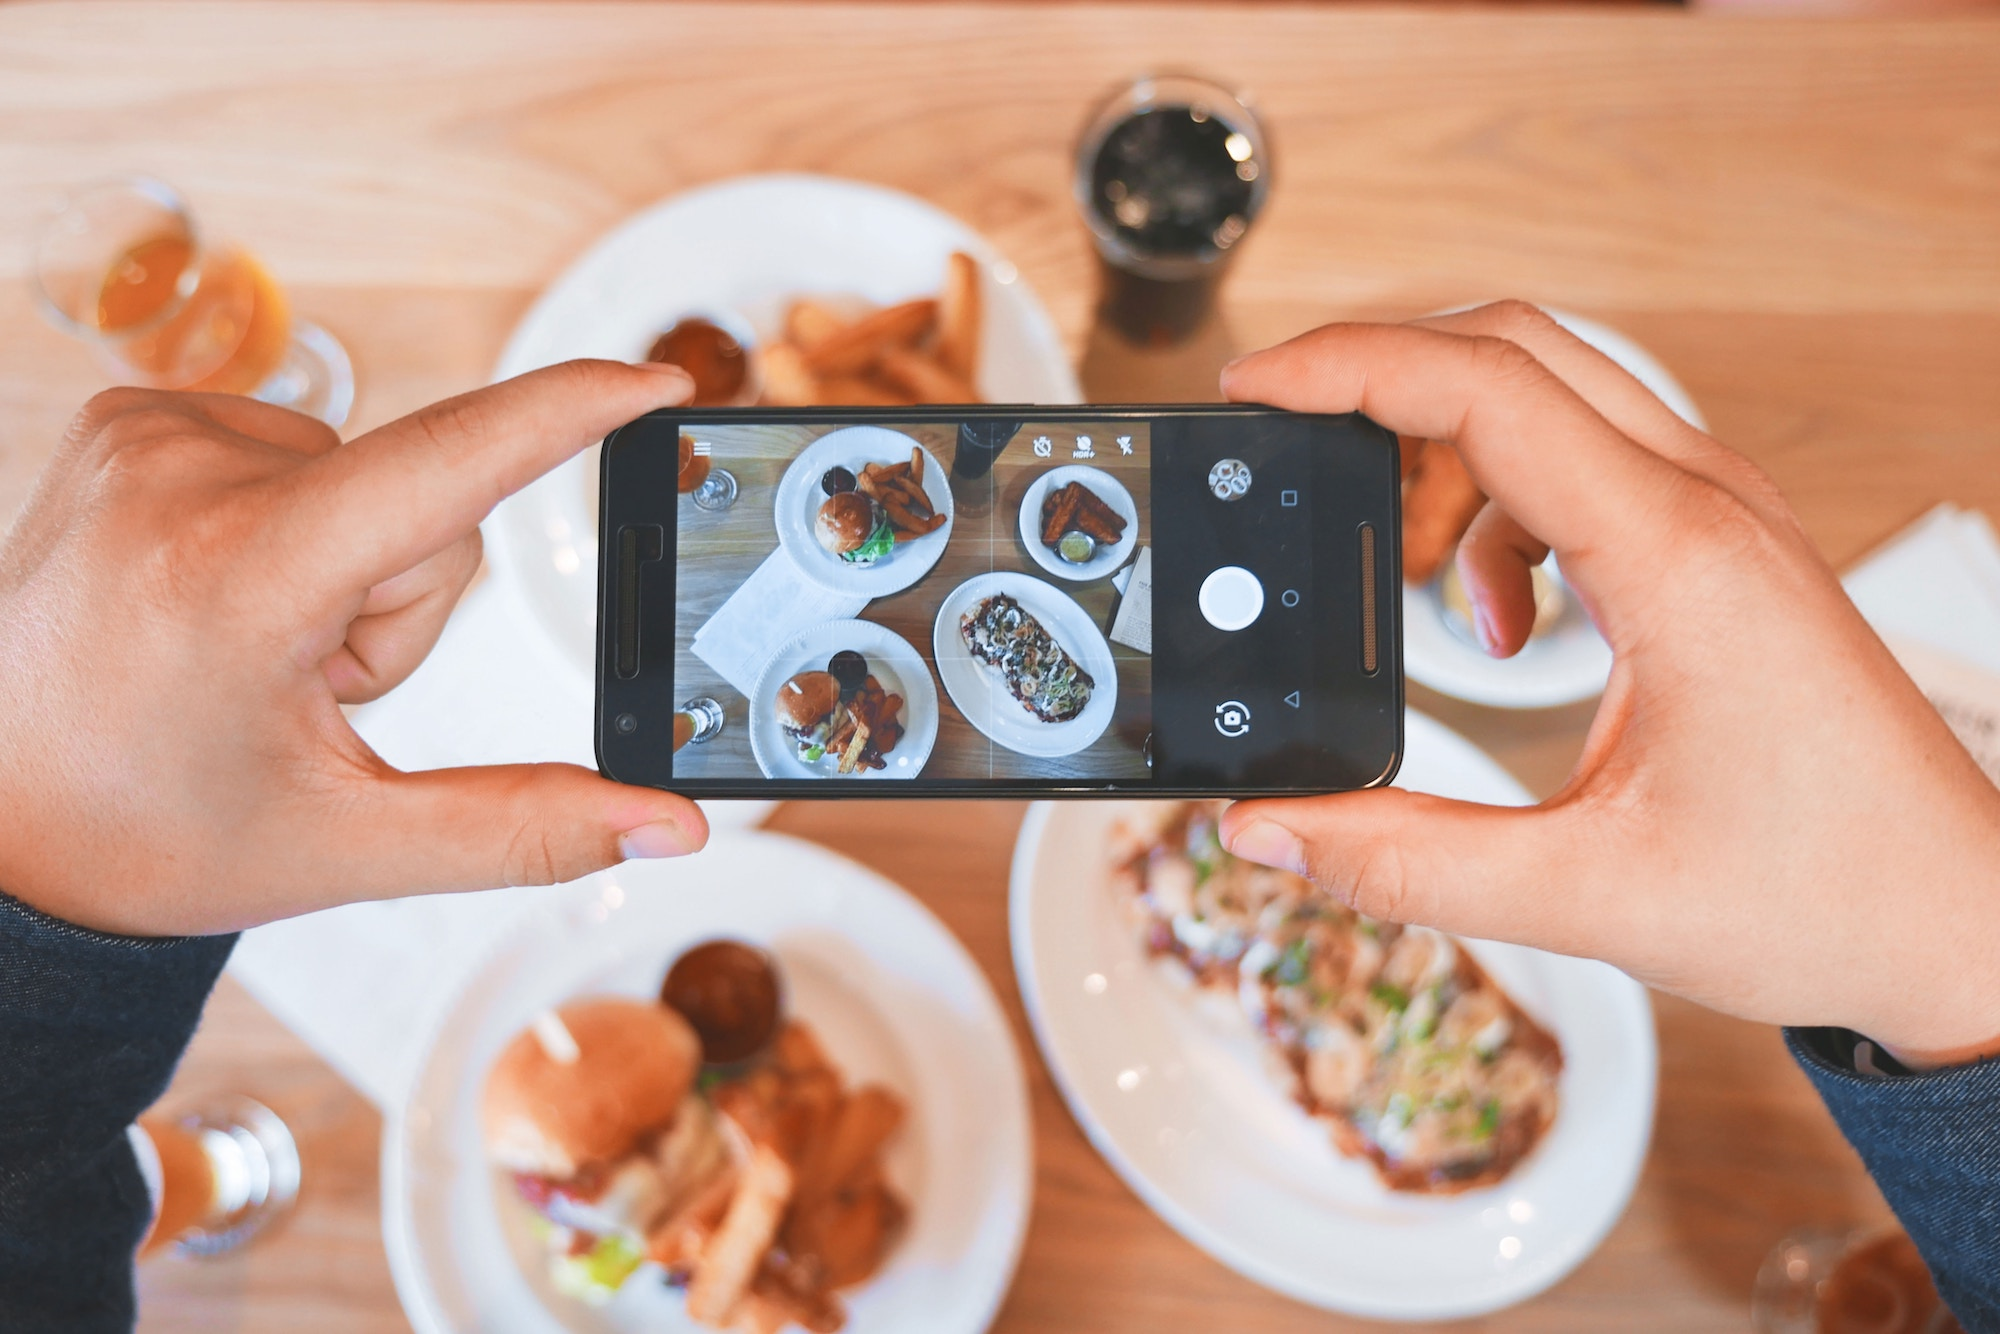 What You Need to Be Posting on Instagram: Choose Your Top 5